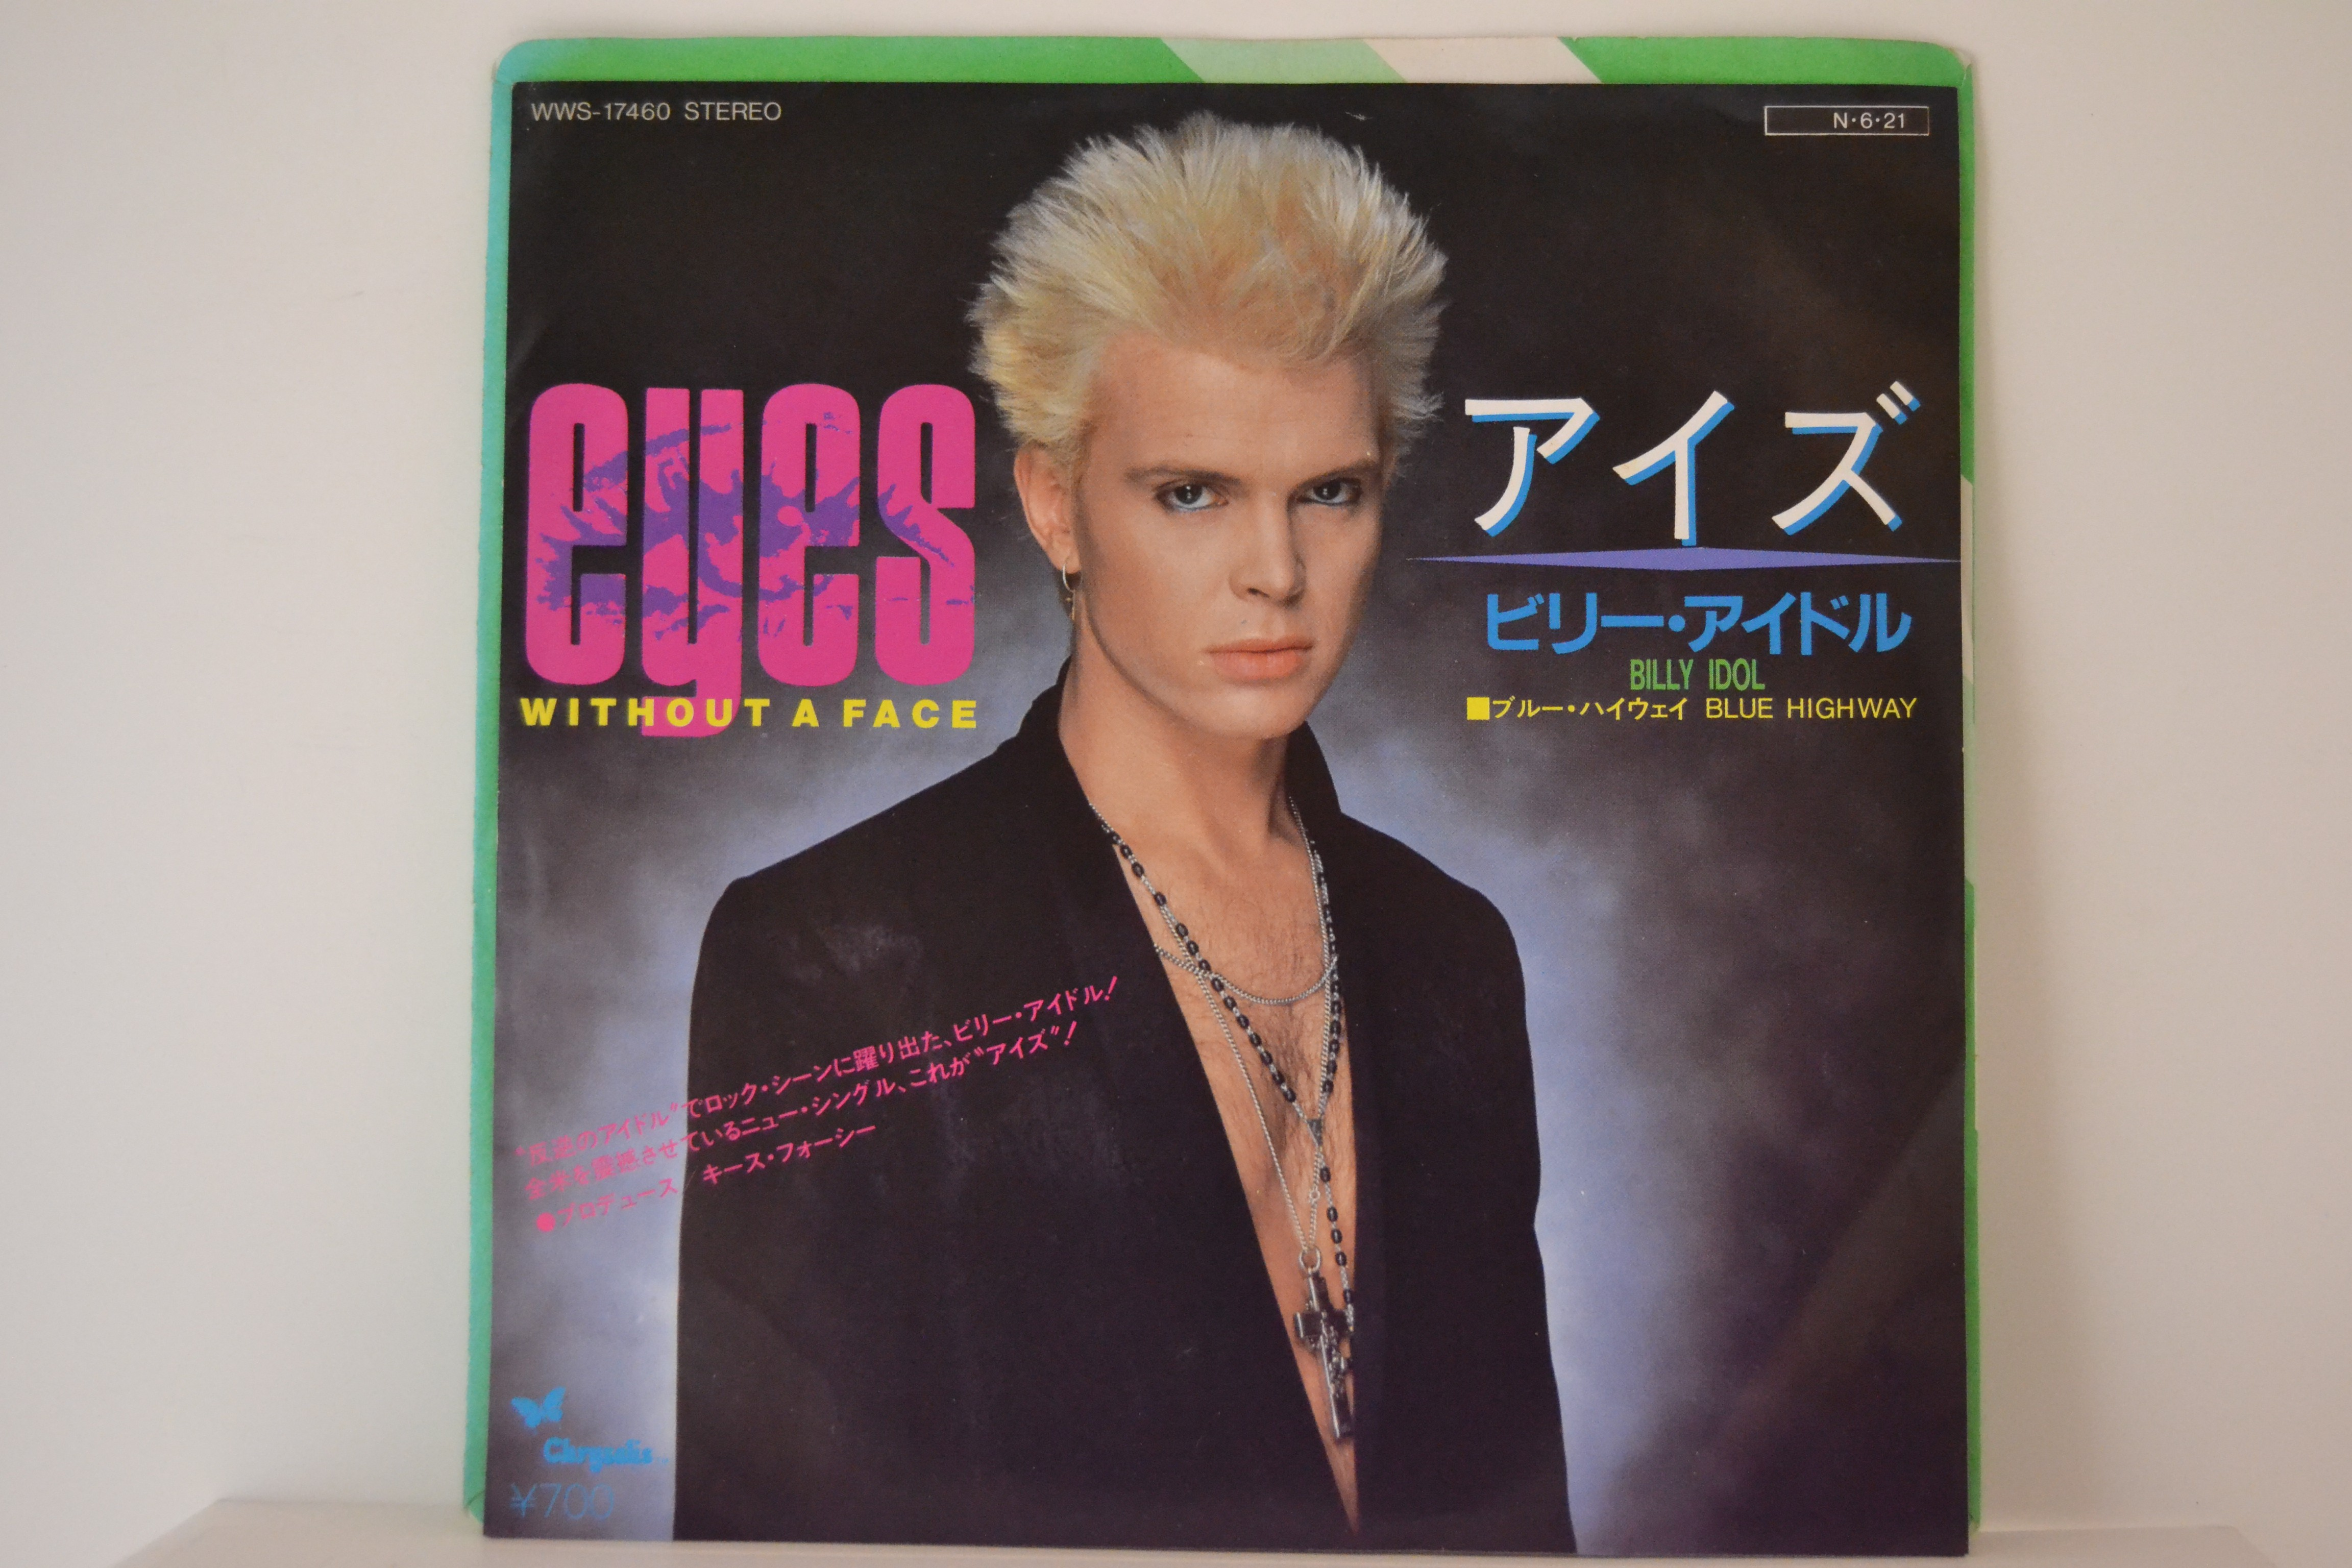 BILLY IDOL : Eyes without a face / Blue highway